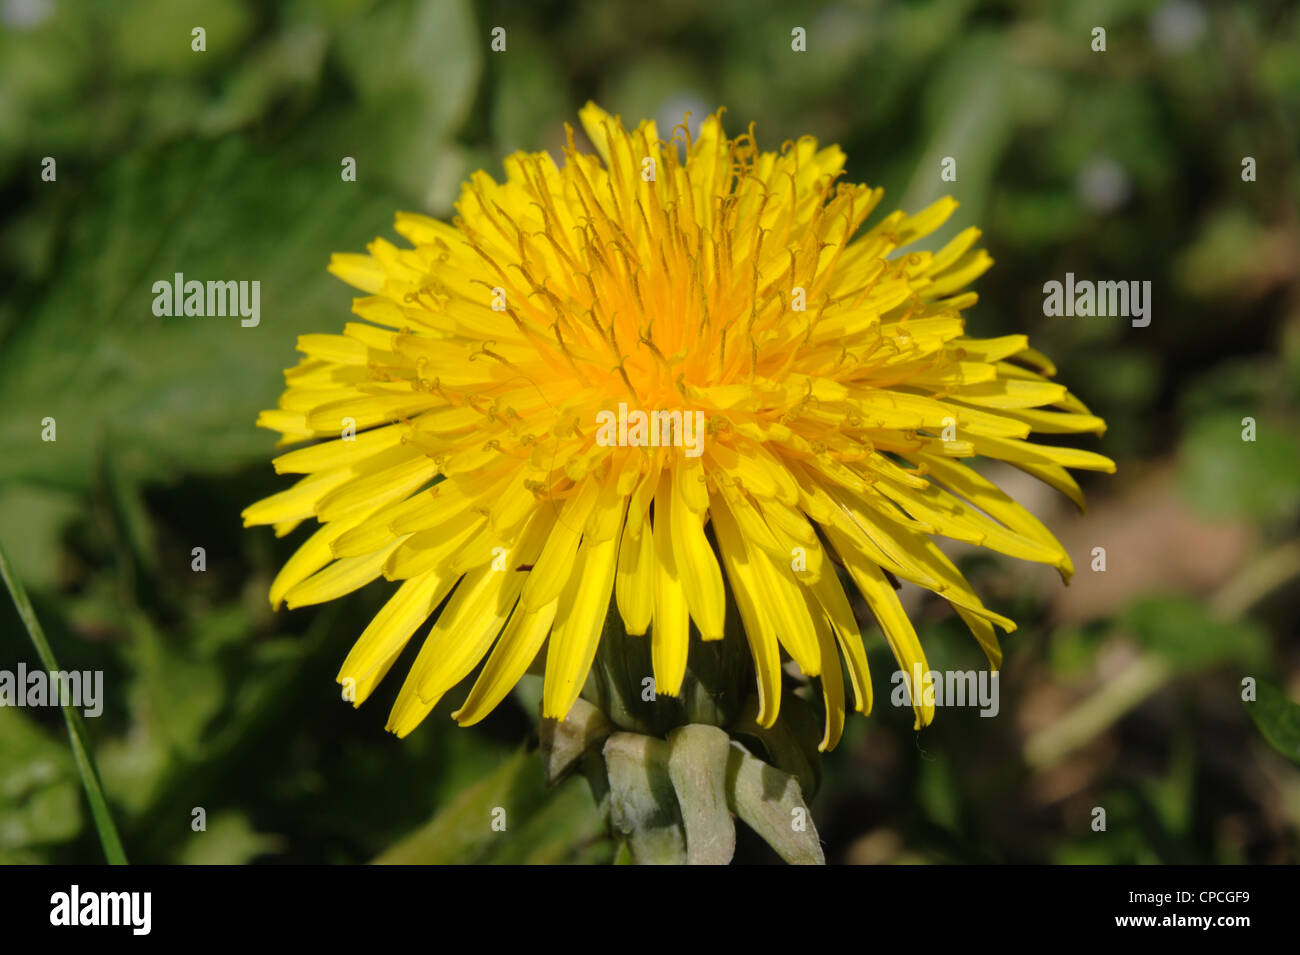 Dandelion (Taraxacum officinale) flower - Stock Image